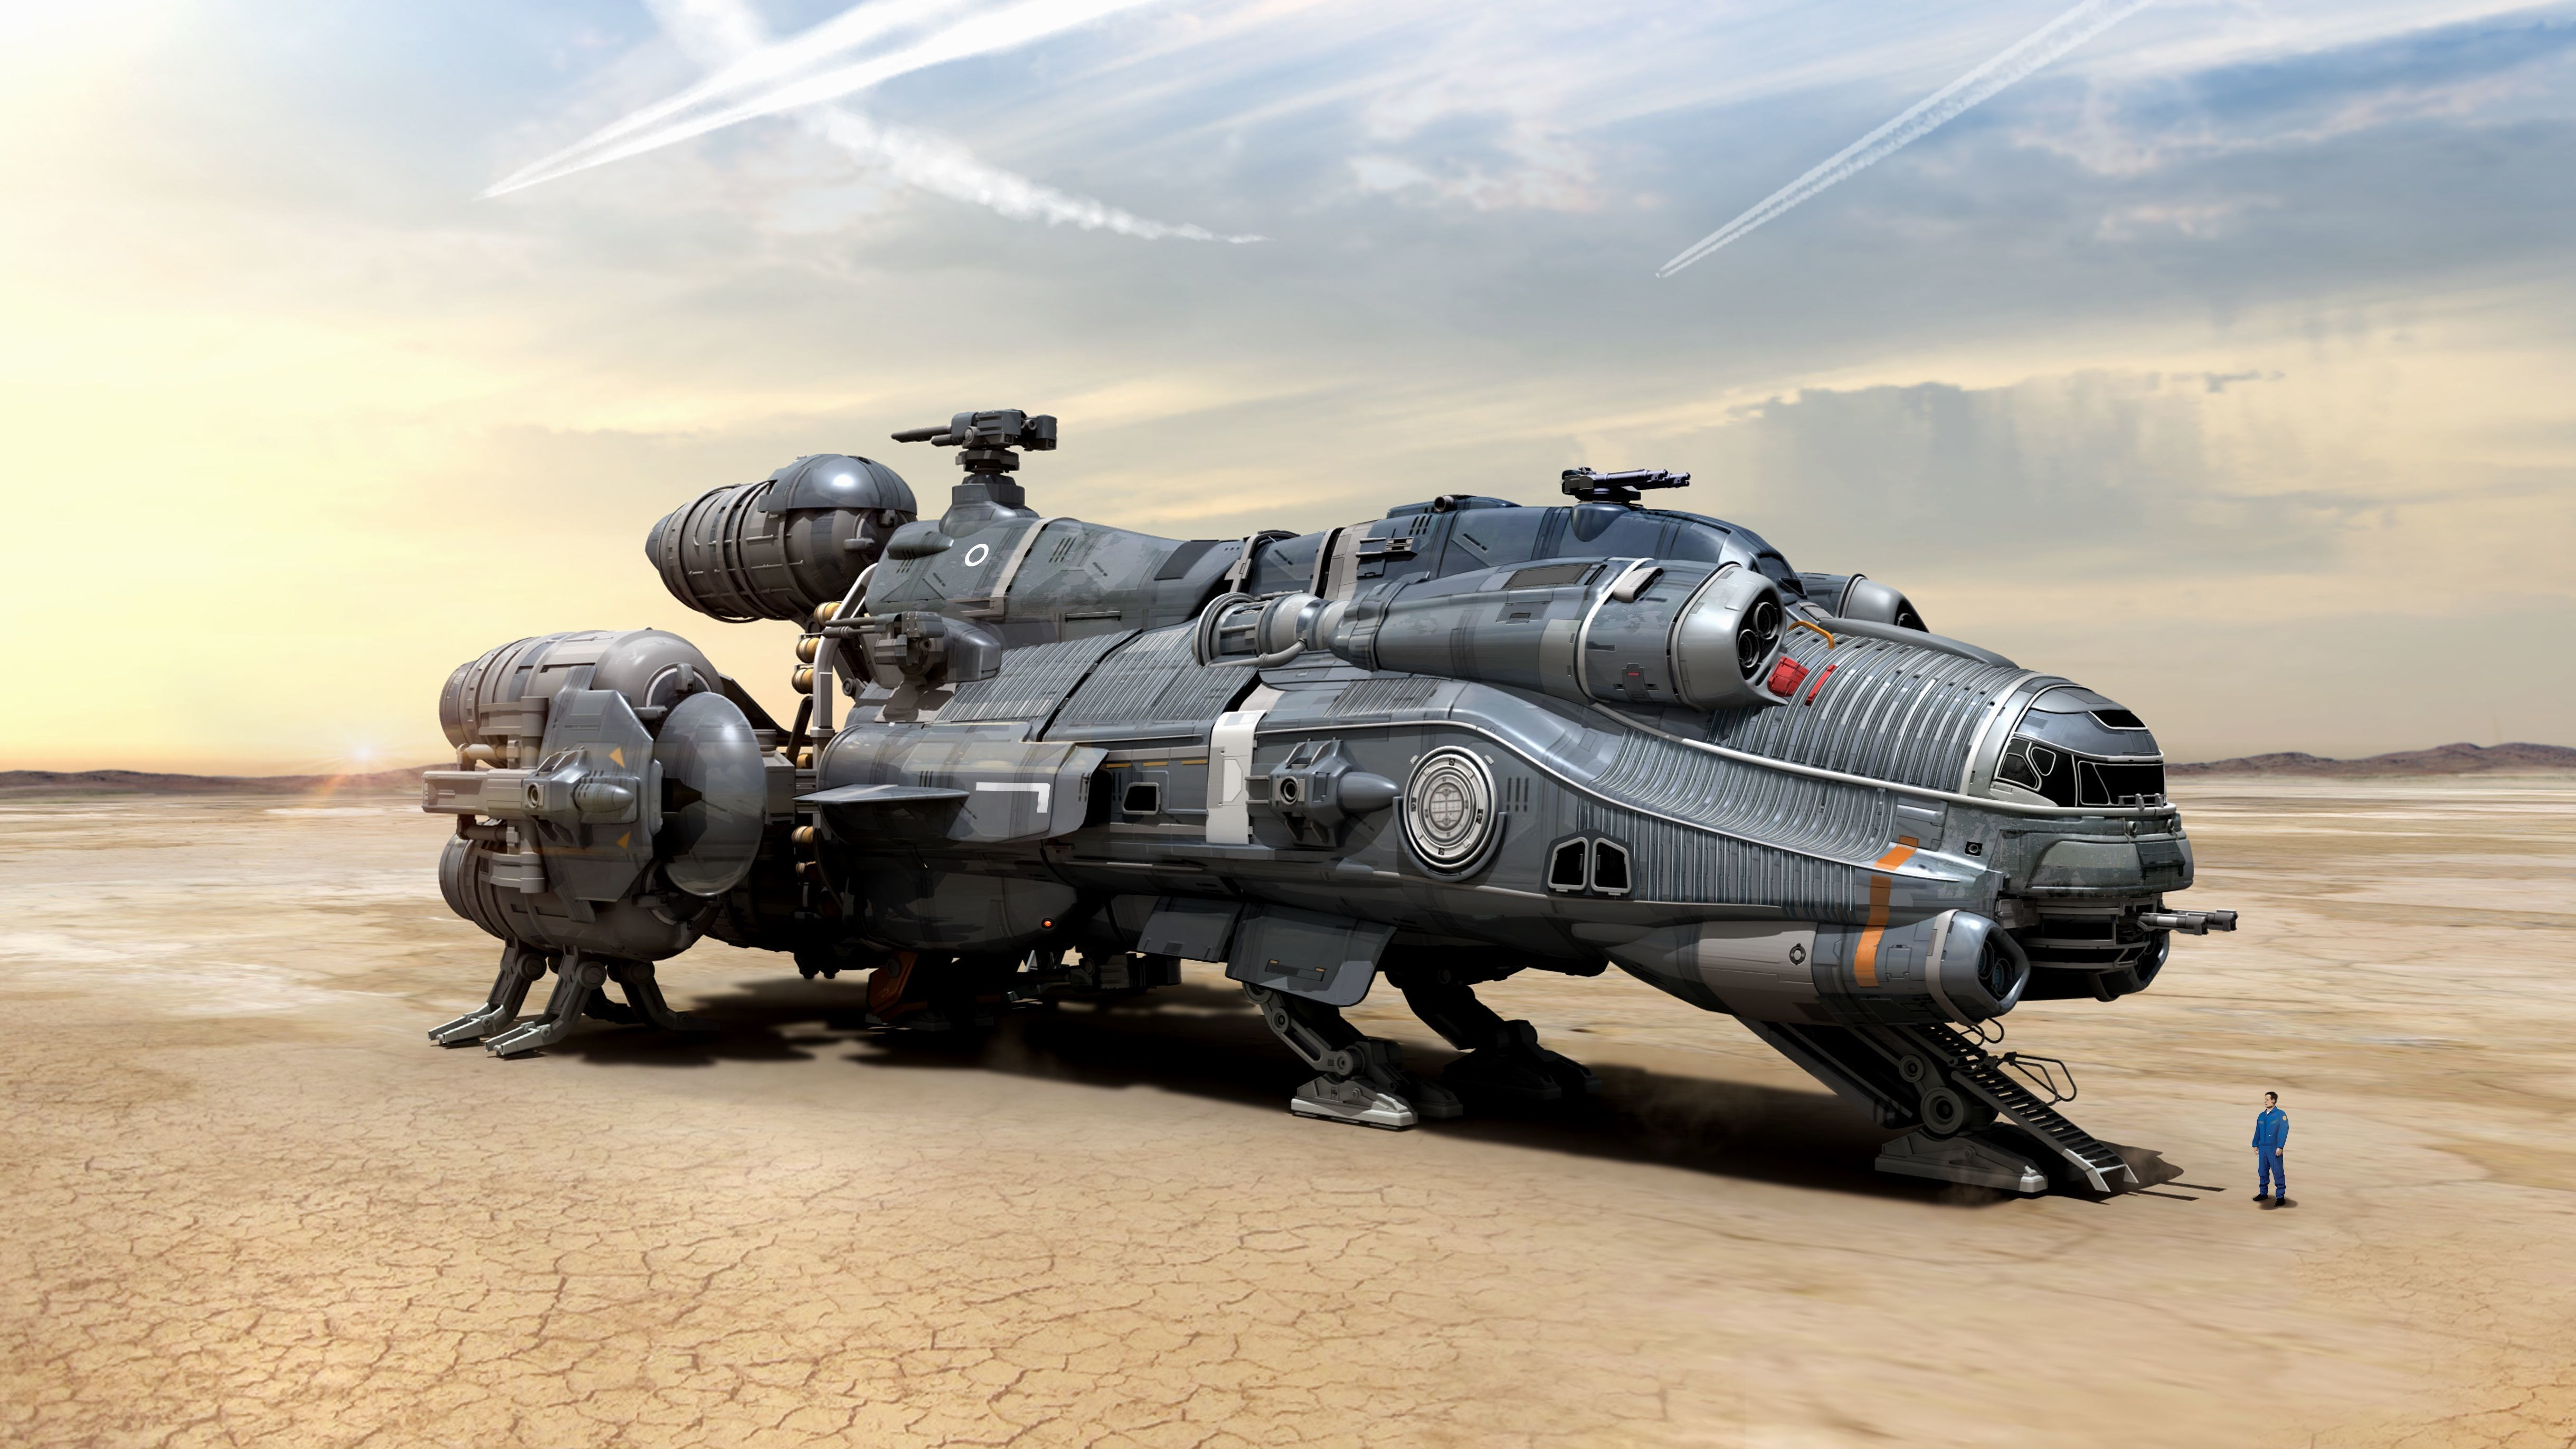 Spaceship 4k Ultra Hd Wallpaper High Quality Walls